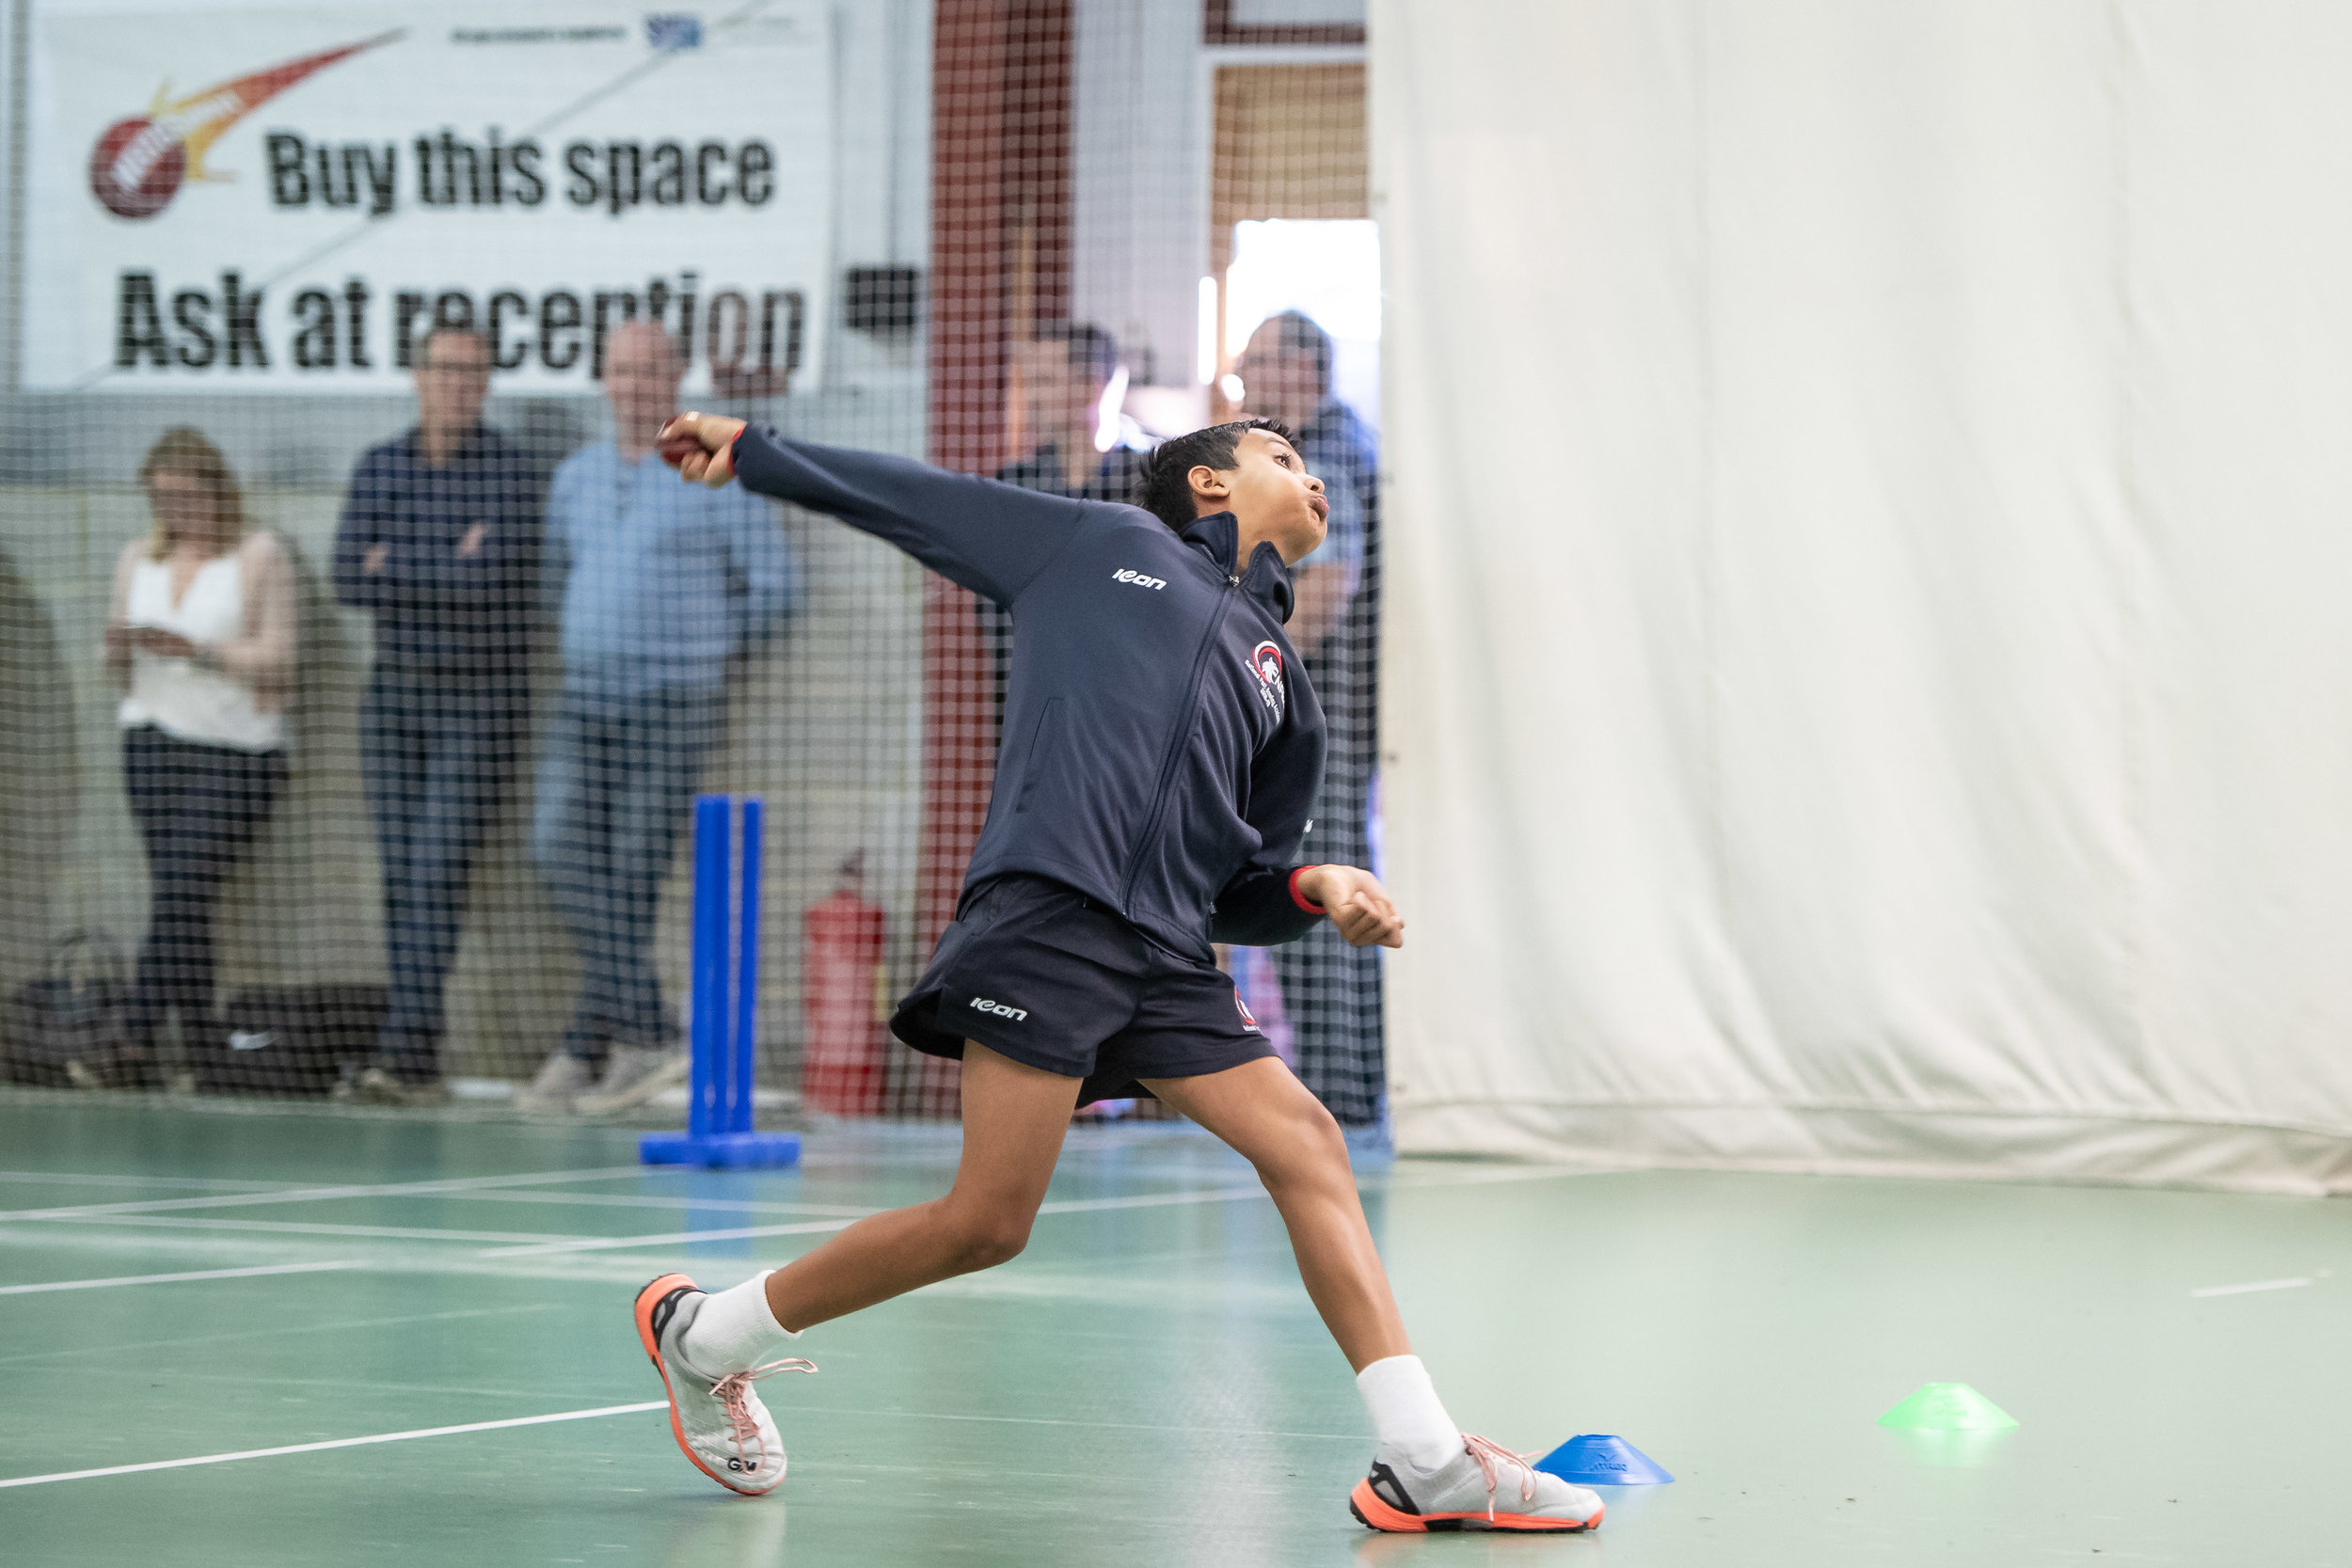 PSI_National_Fast_Bowling_Academy_21OCT18_SW_193.JPG